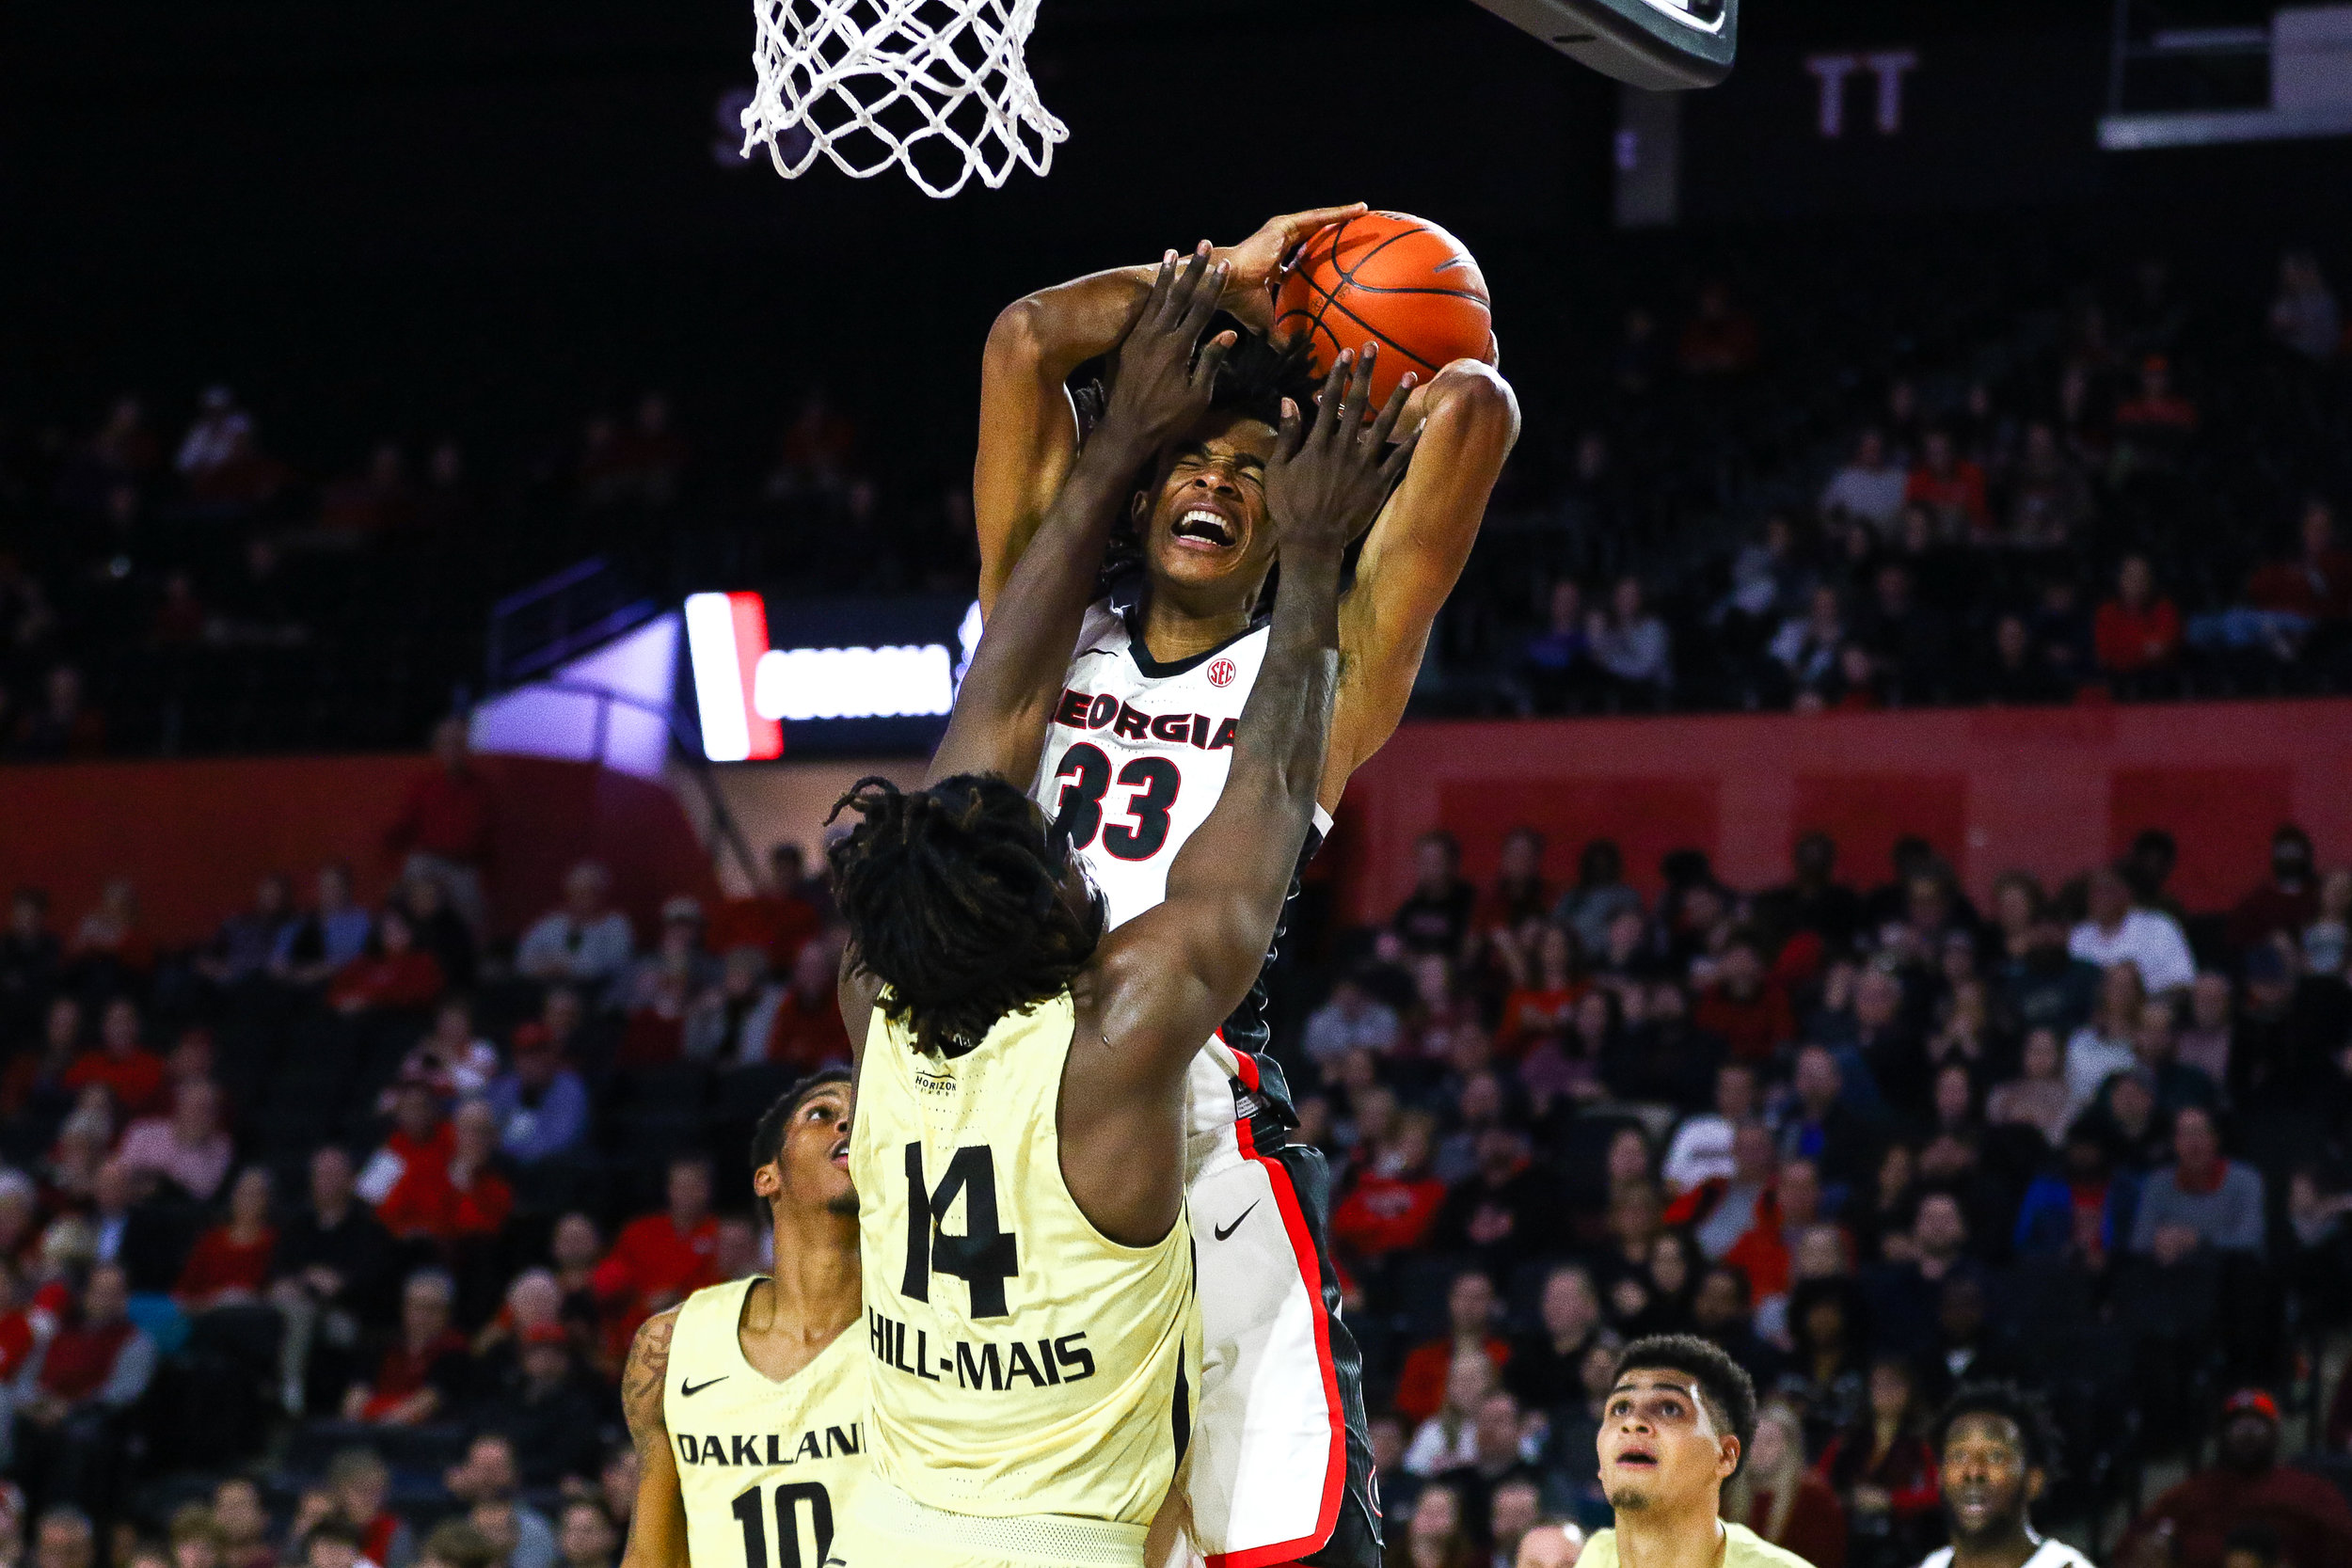 Georgia forward Nicolas Claxton (33) draws a foul during a men's basketball game between the University of Georgia and Oakland University in Stegeman Coliseum on Tuesday, December 18, 2018.